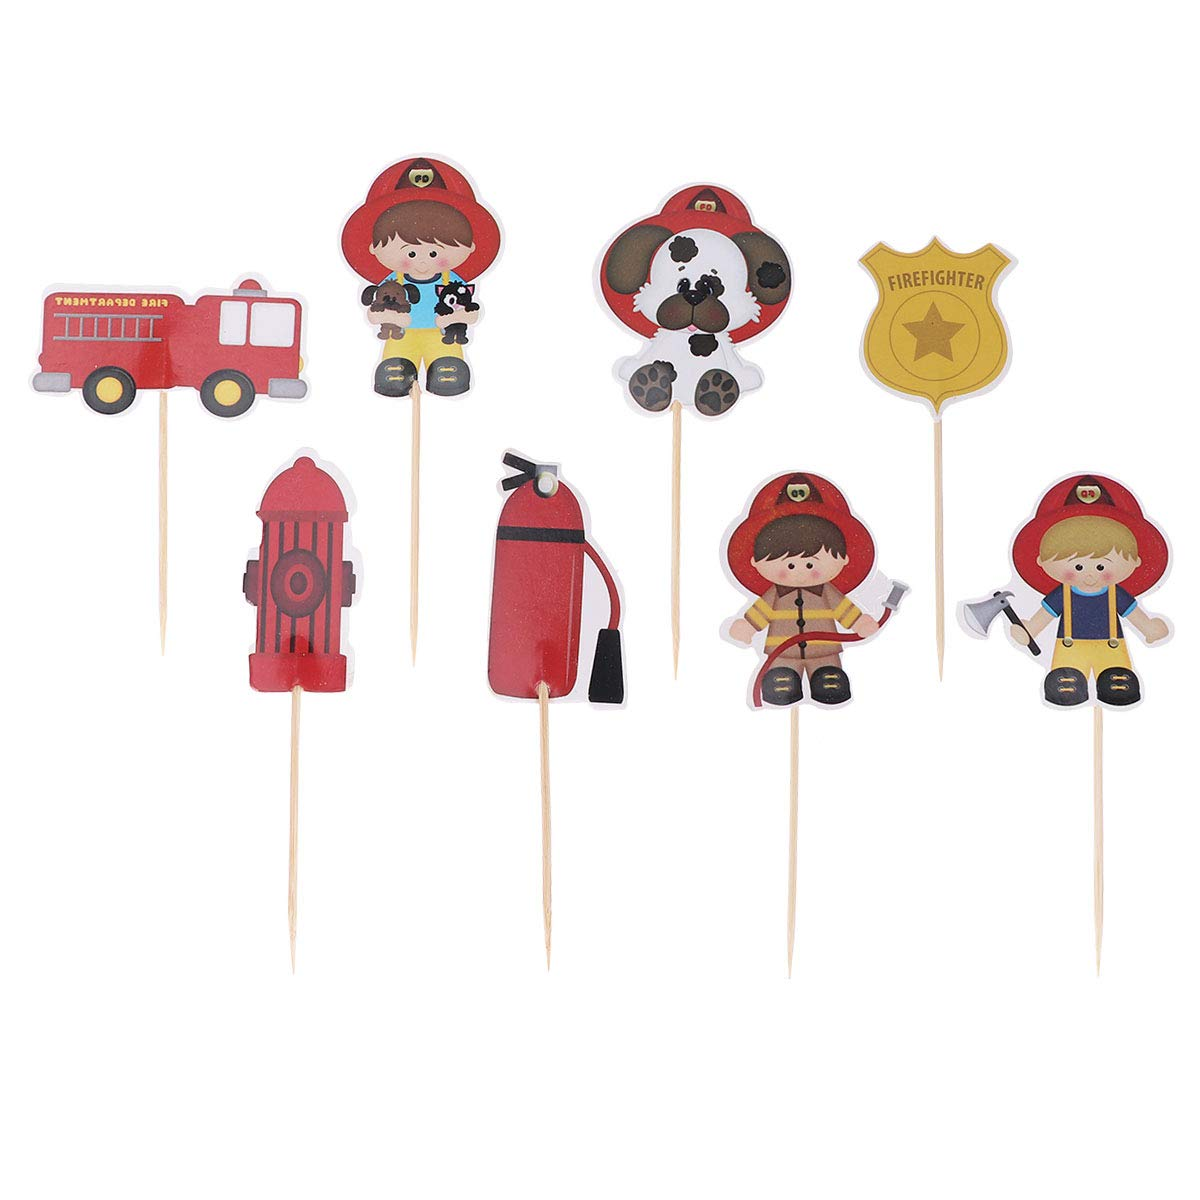 Kids Birthday Cake Topper Fire Truck Cake Picks Cake Decor For Baby Shower Kids Birthday 24pcs Walmart Com Walmart Com